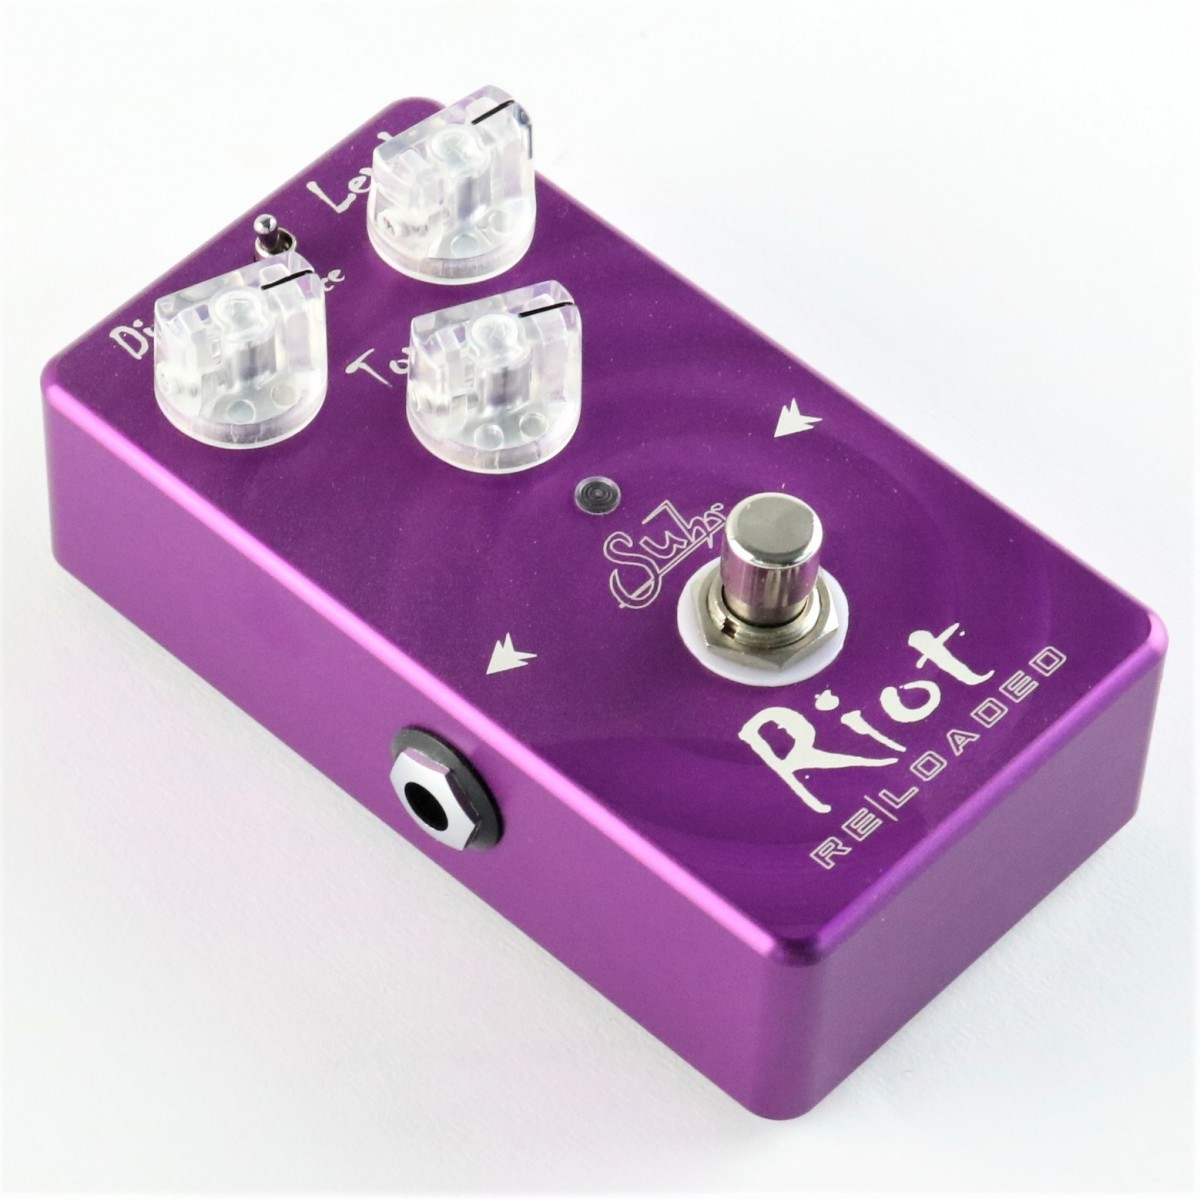 Big Bends Gloss Sauce Polish